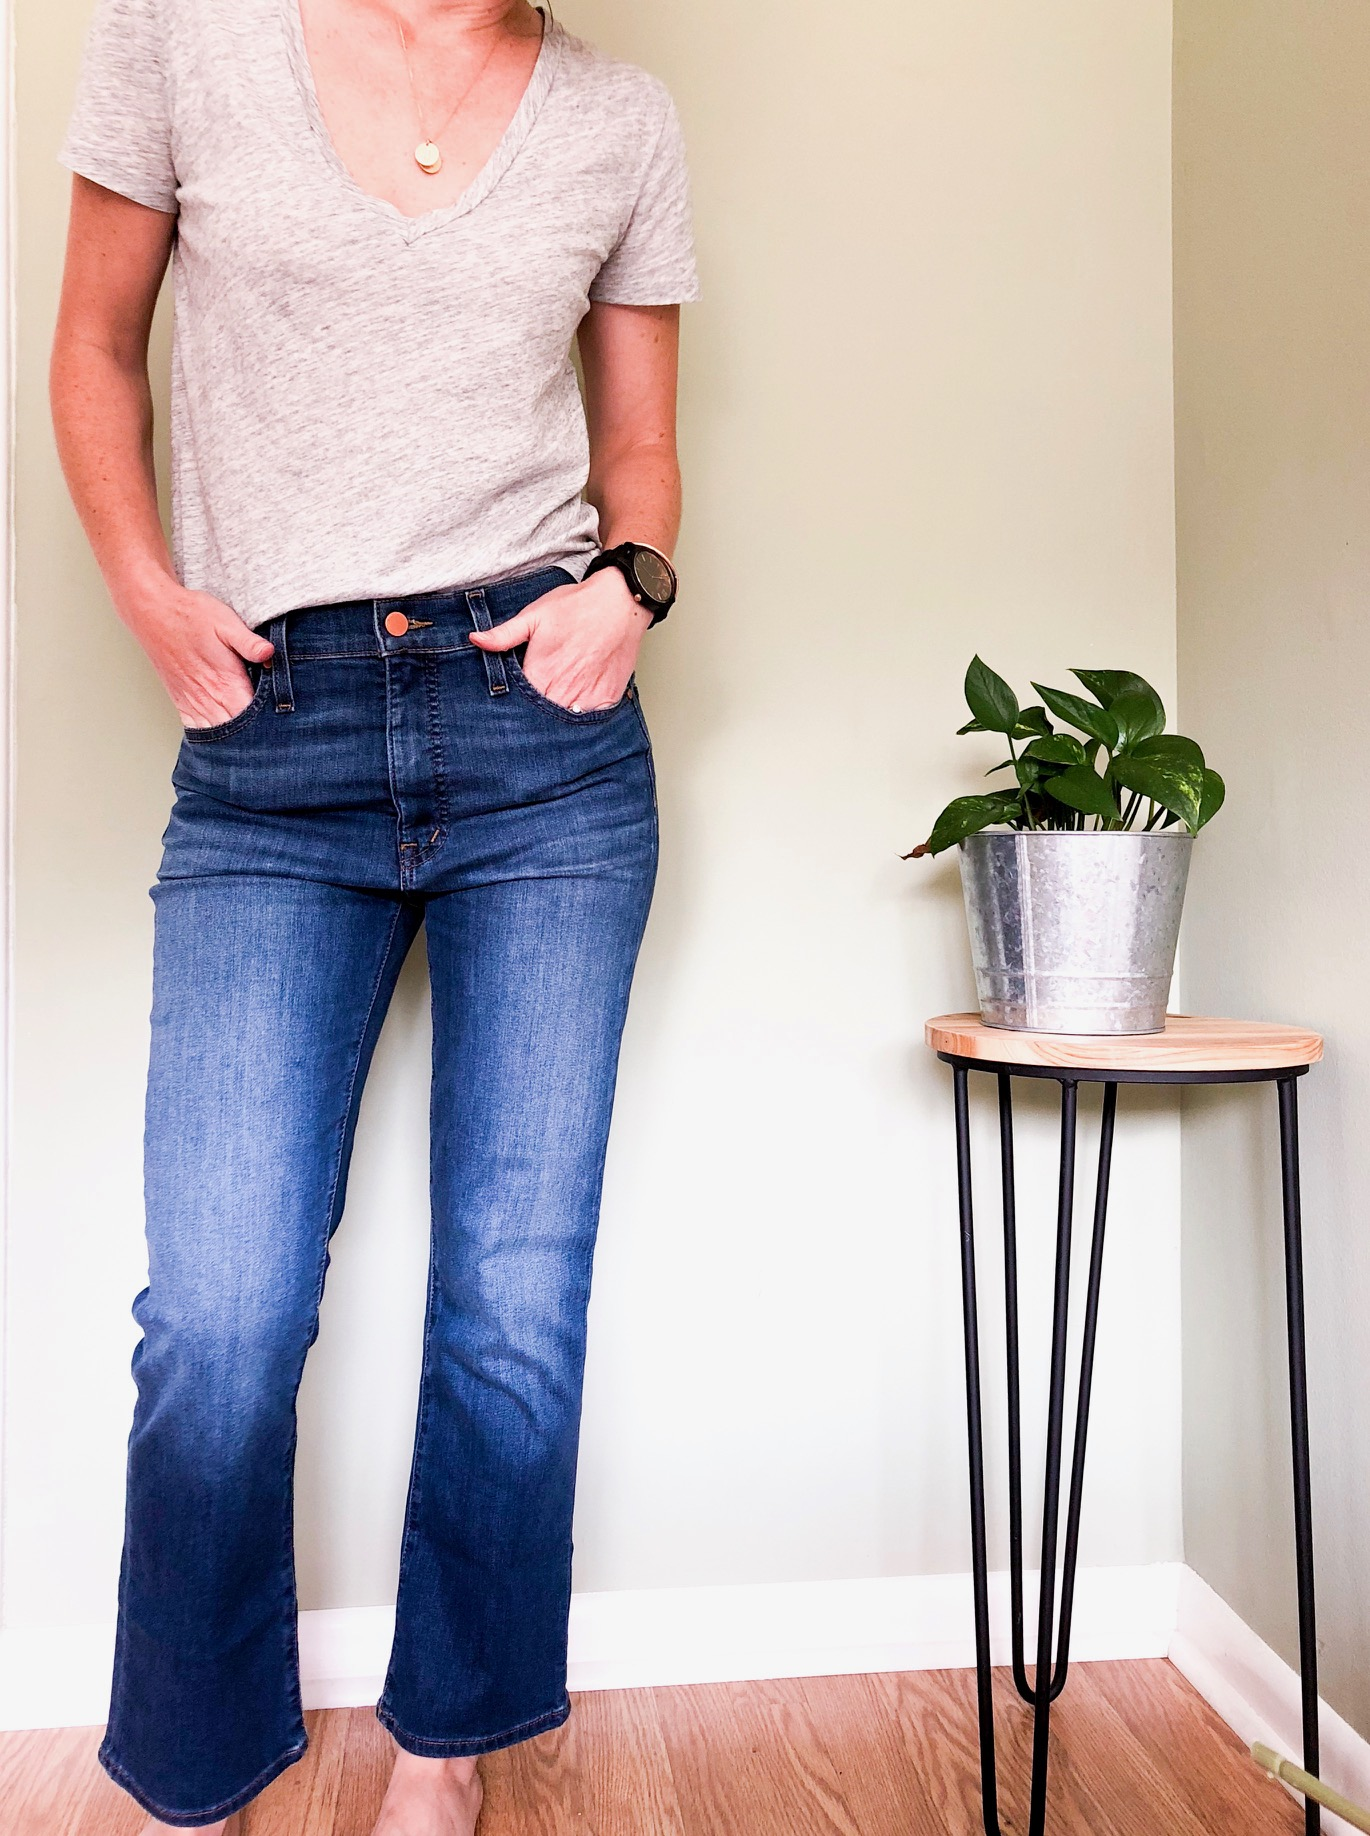 Daily Splendor - August Instagram Roundup #casualstyle #fashion #Jeans